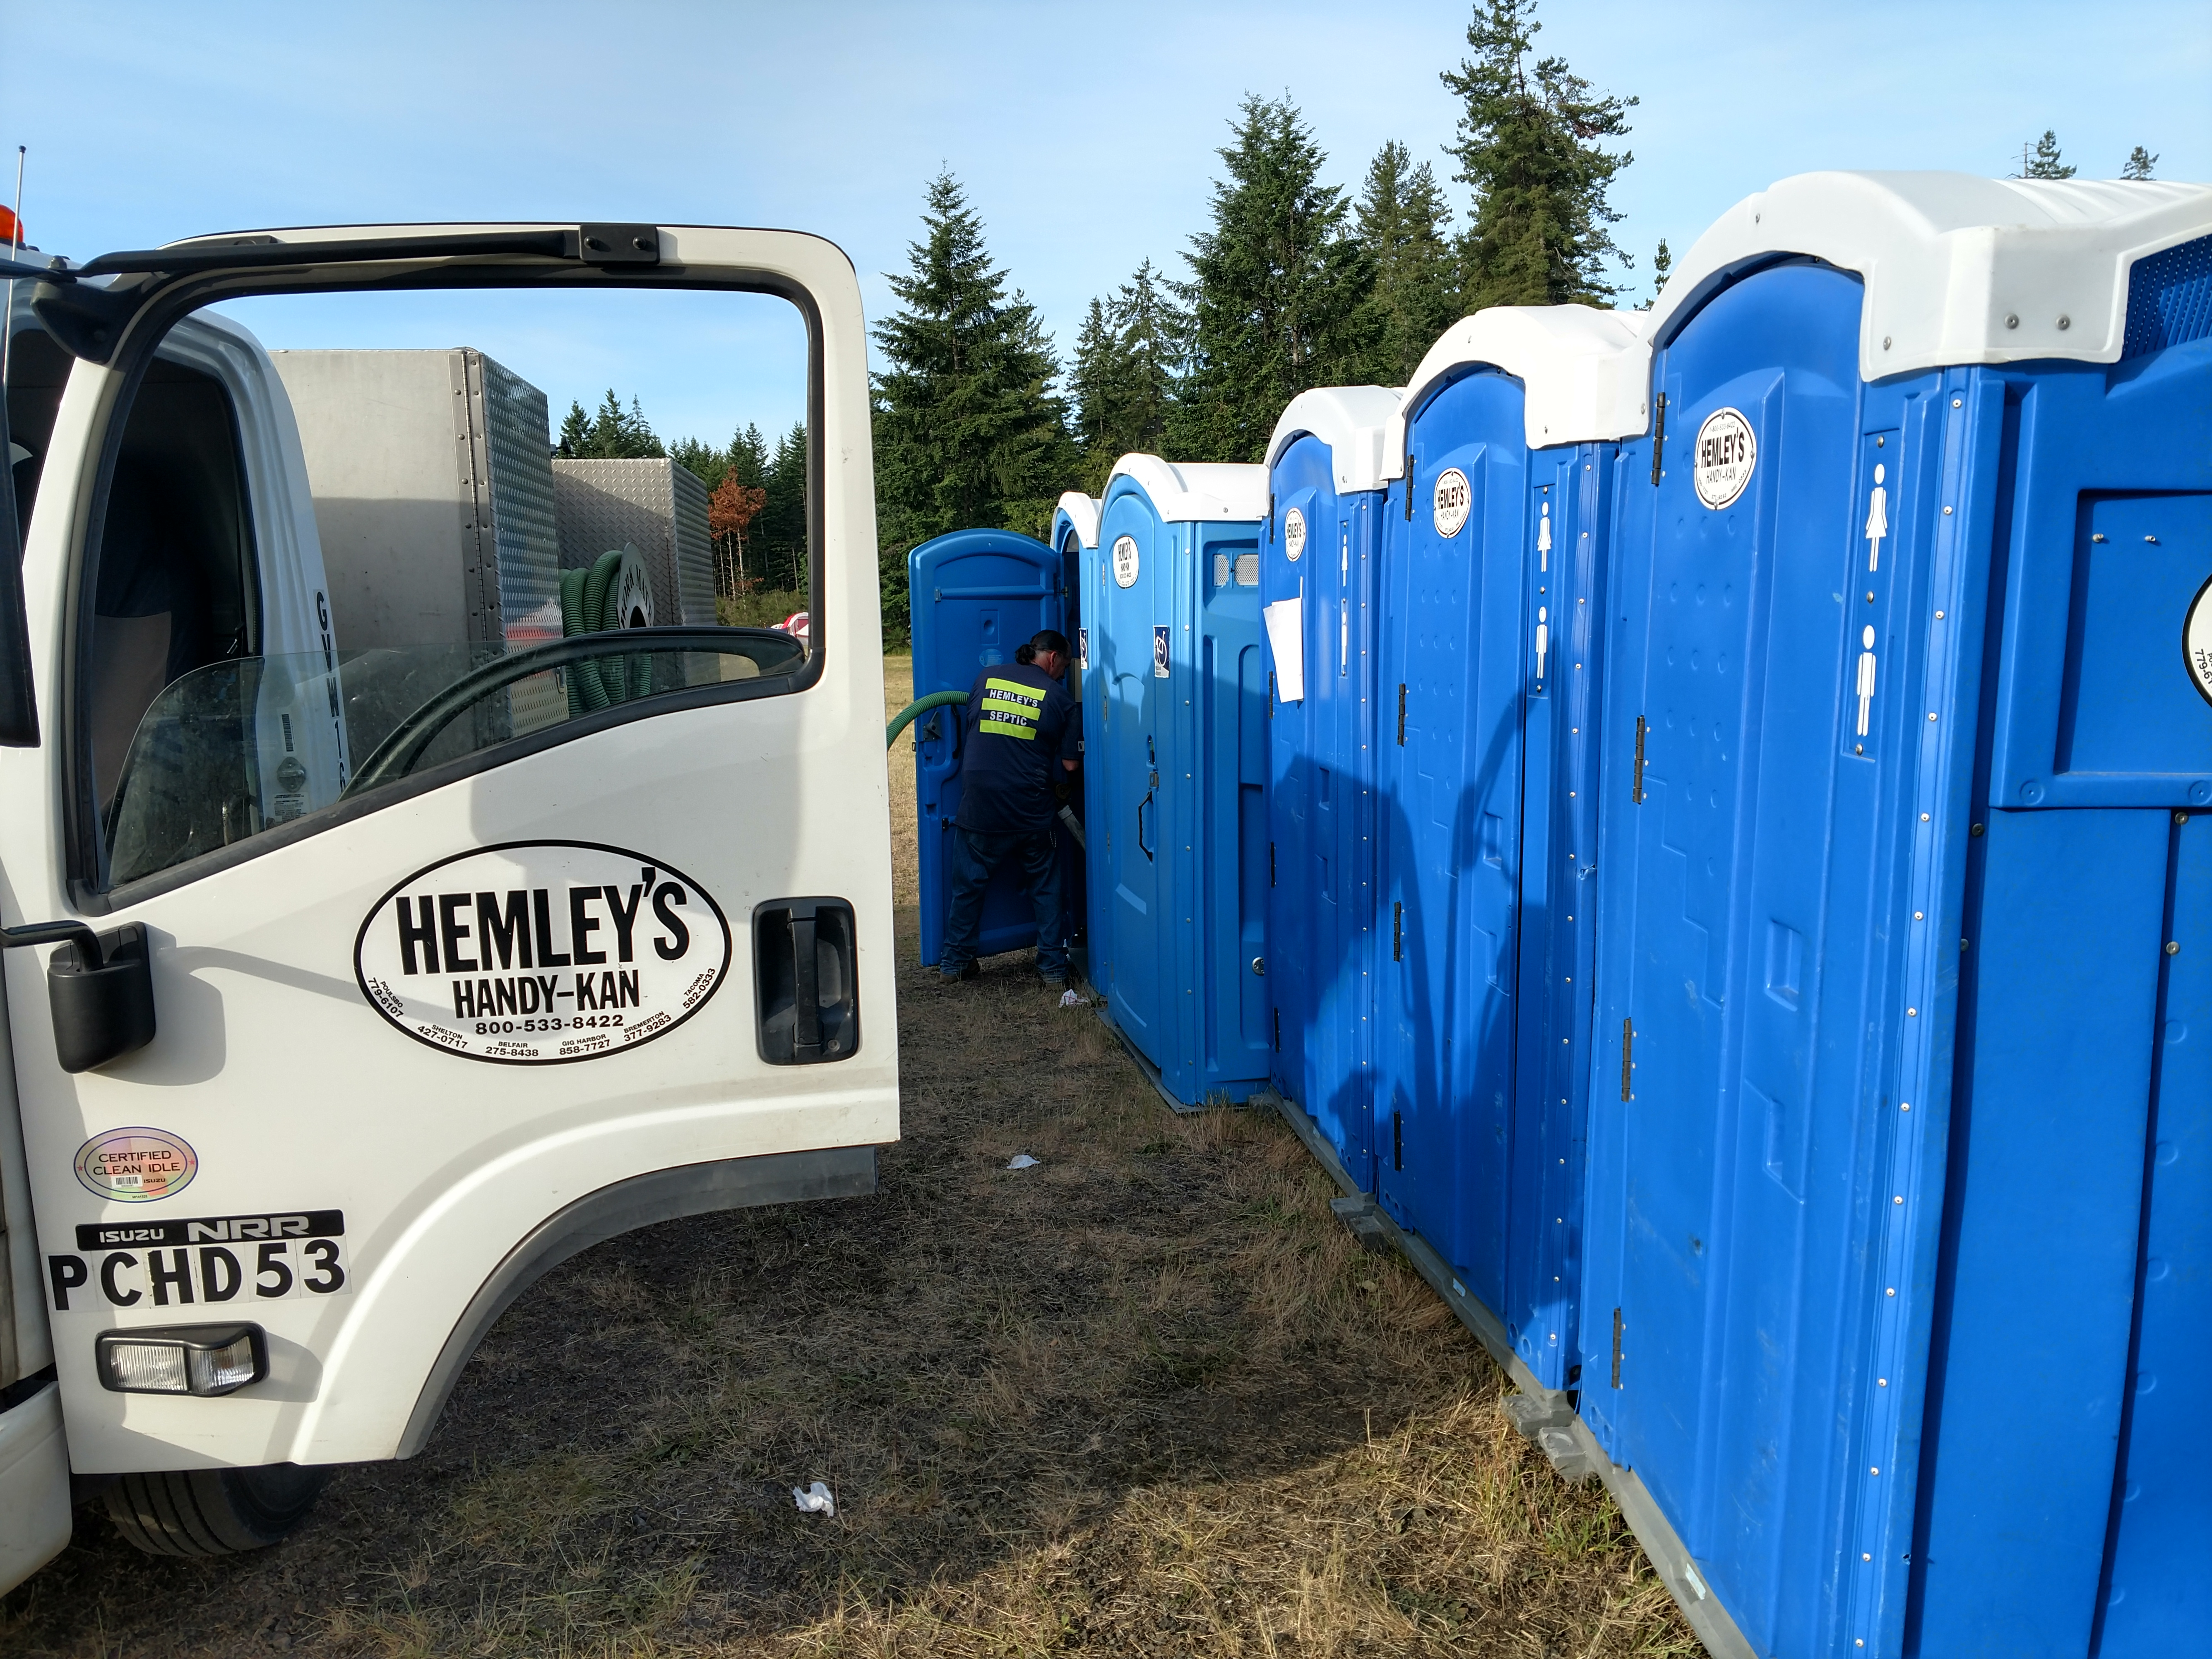 Hemleys Handy Kans - Portable Toilet Rentals For Job-sites, Events, Emergencies, in Gig Harbor, Bremerton, Port Orchard, Kitsap County WA, Pierce County WA, and King County WA